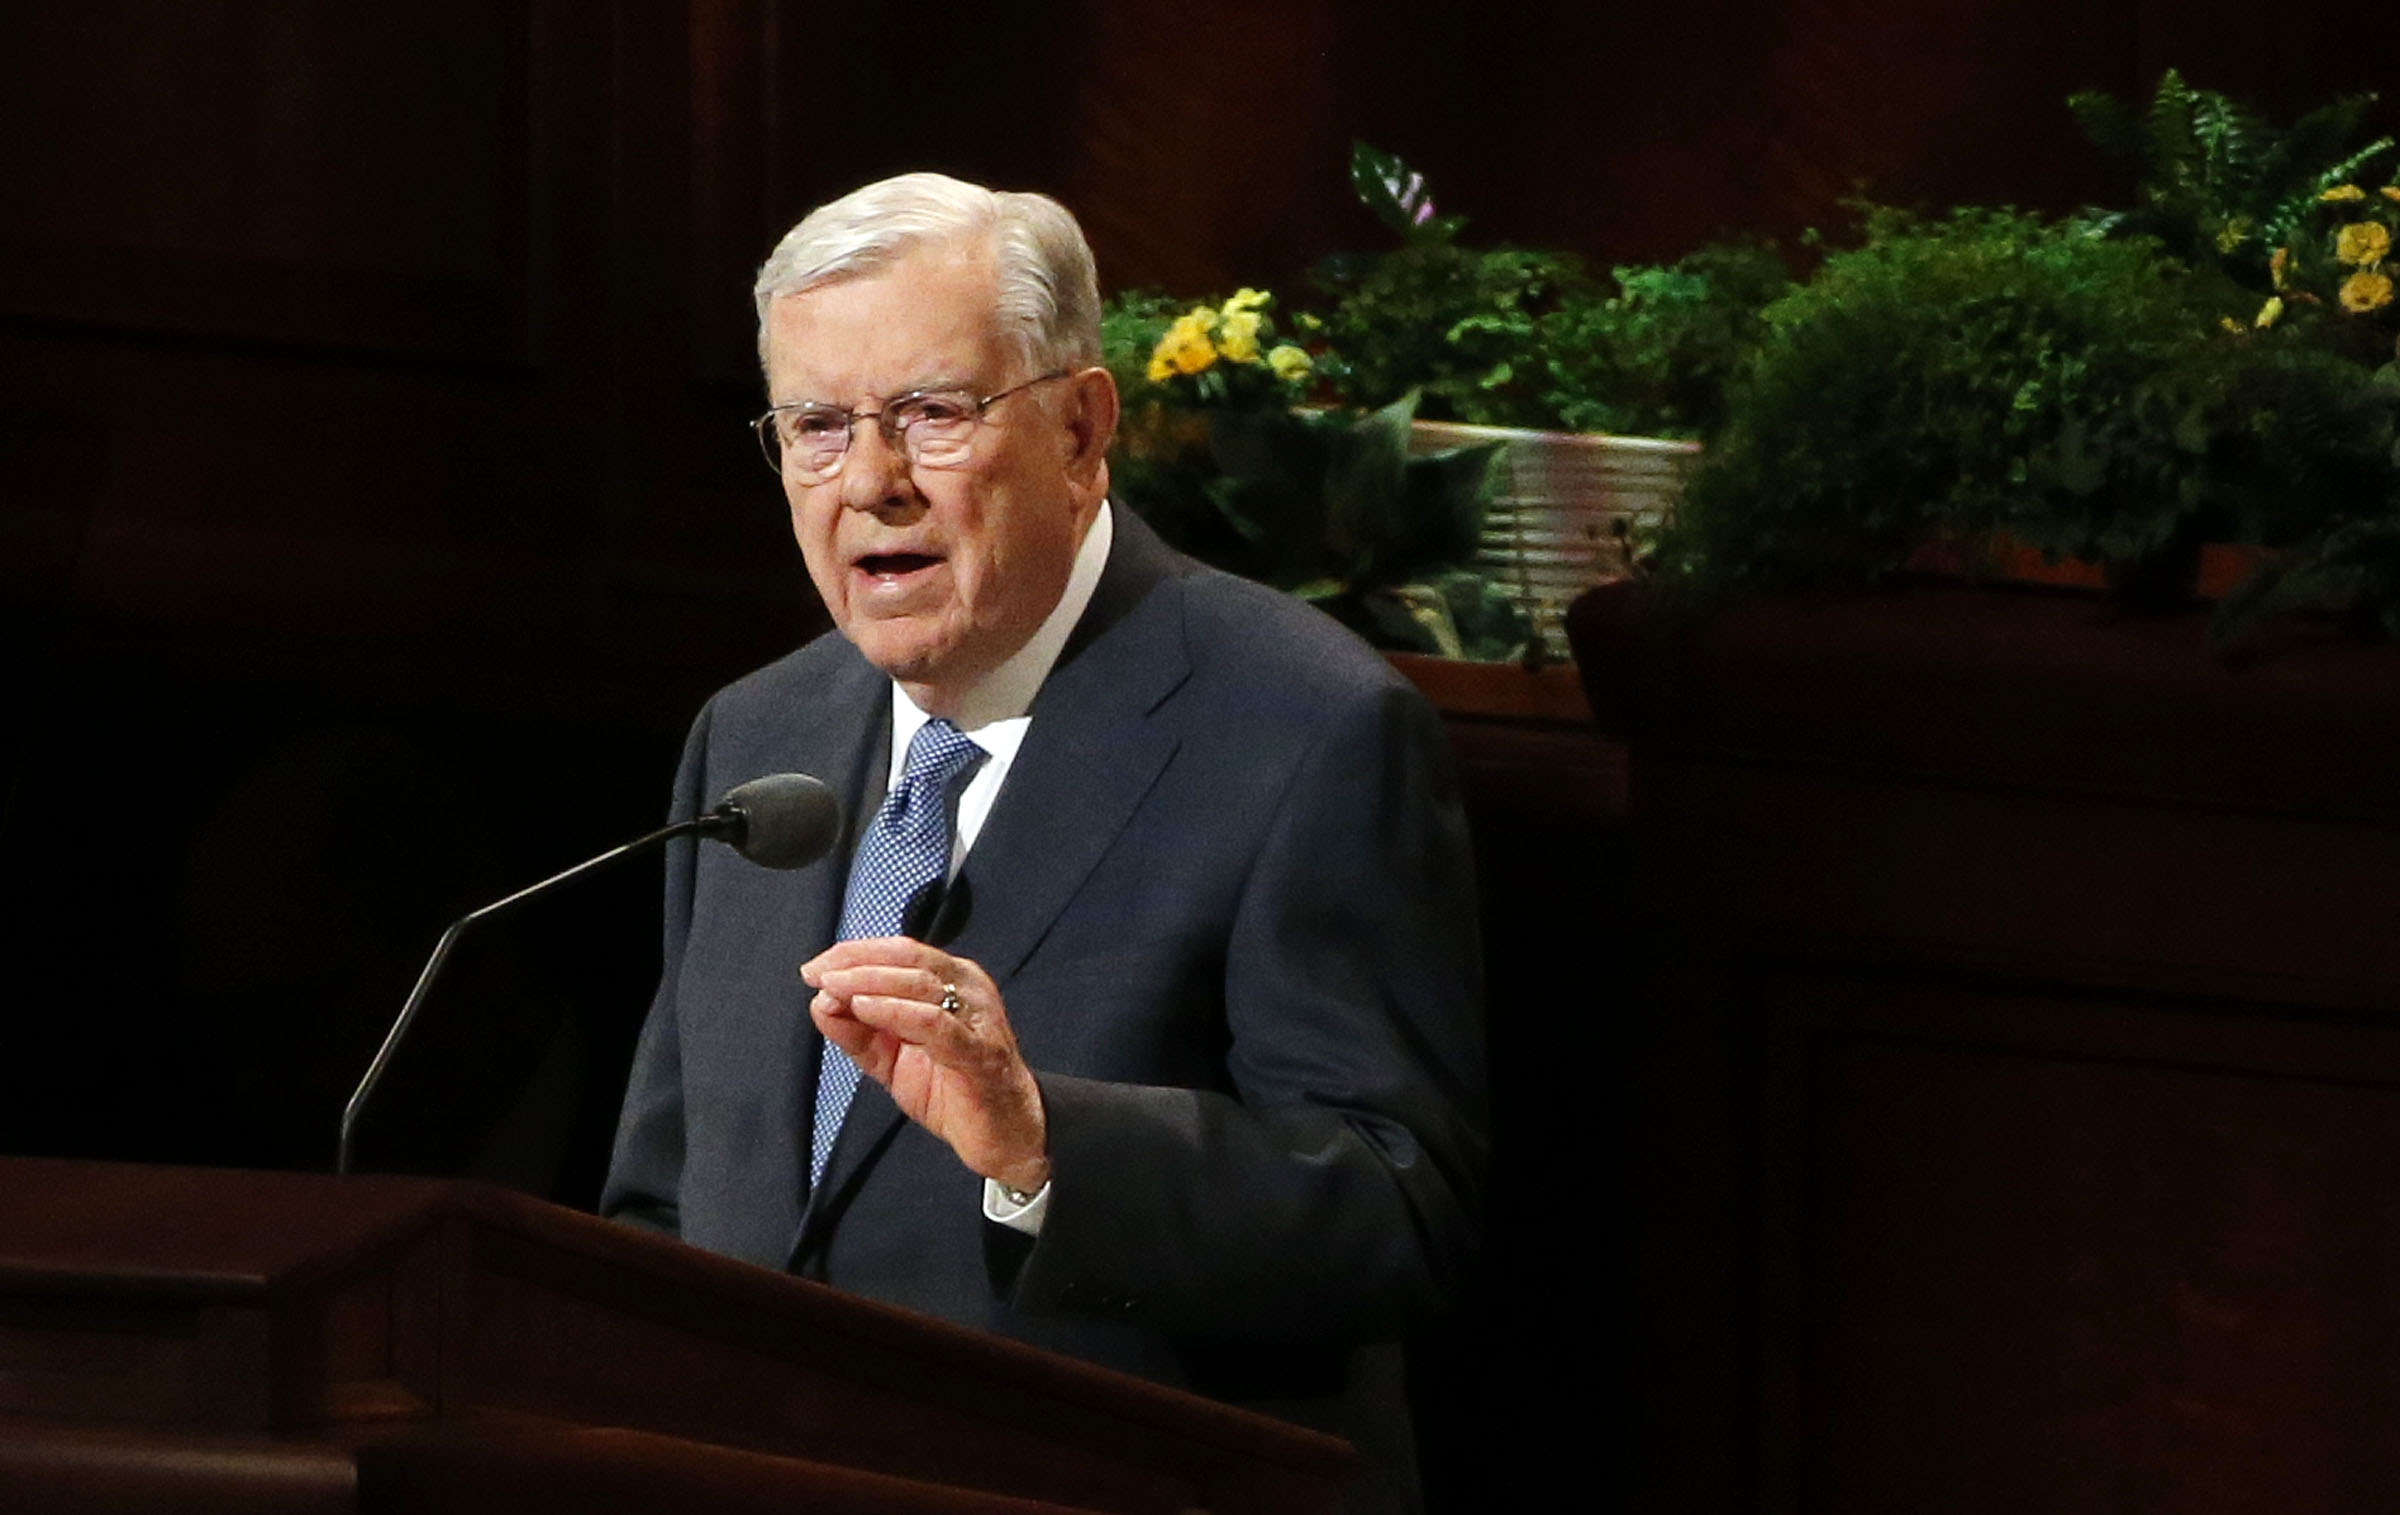 President M. Russell Ballard, acting president of the Quorum of the Twelve Apostles, speaks during the Saturday morning session of the 188th Annual General Conference of the LDS Church in Salt Lake City on Saturday, March 31, 2018.